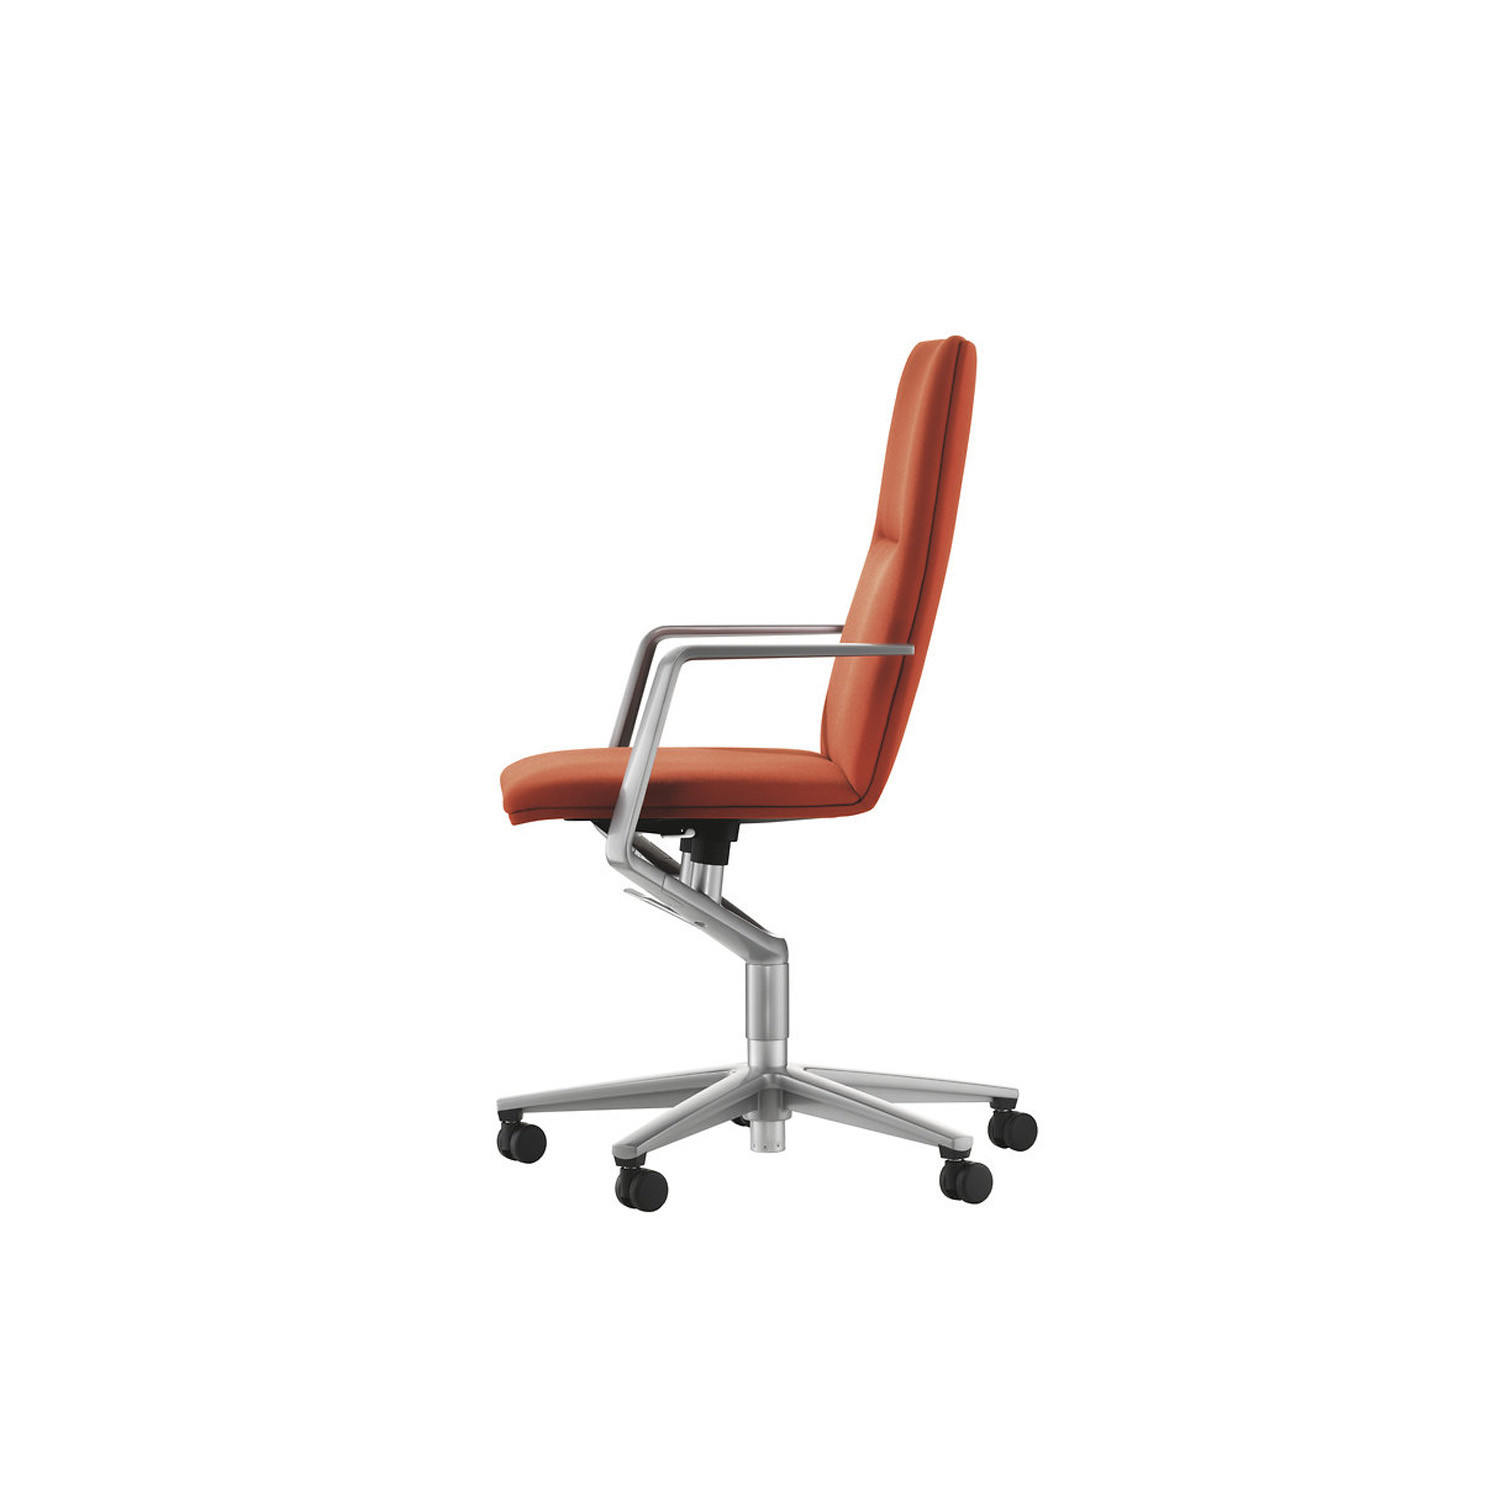 Sola Chair Side View